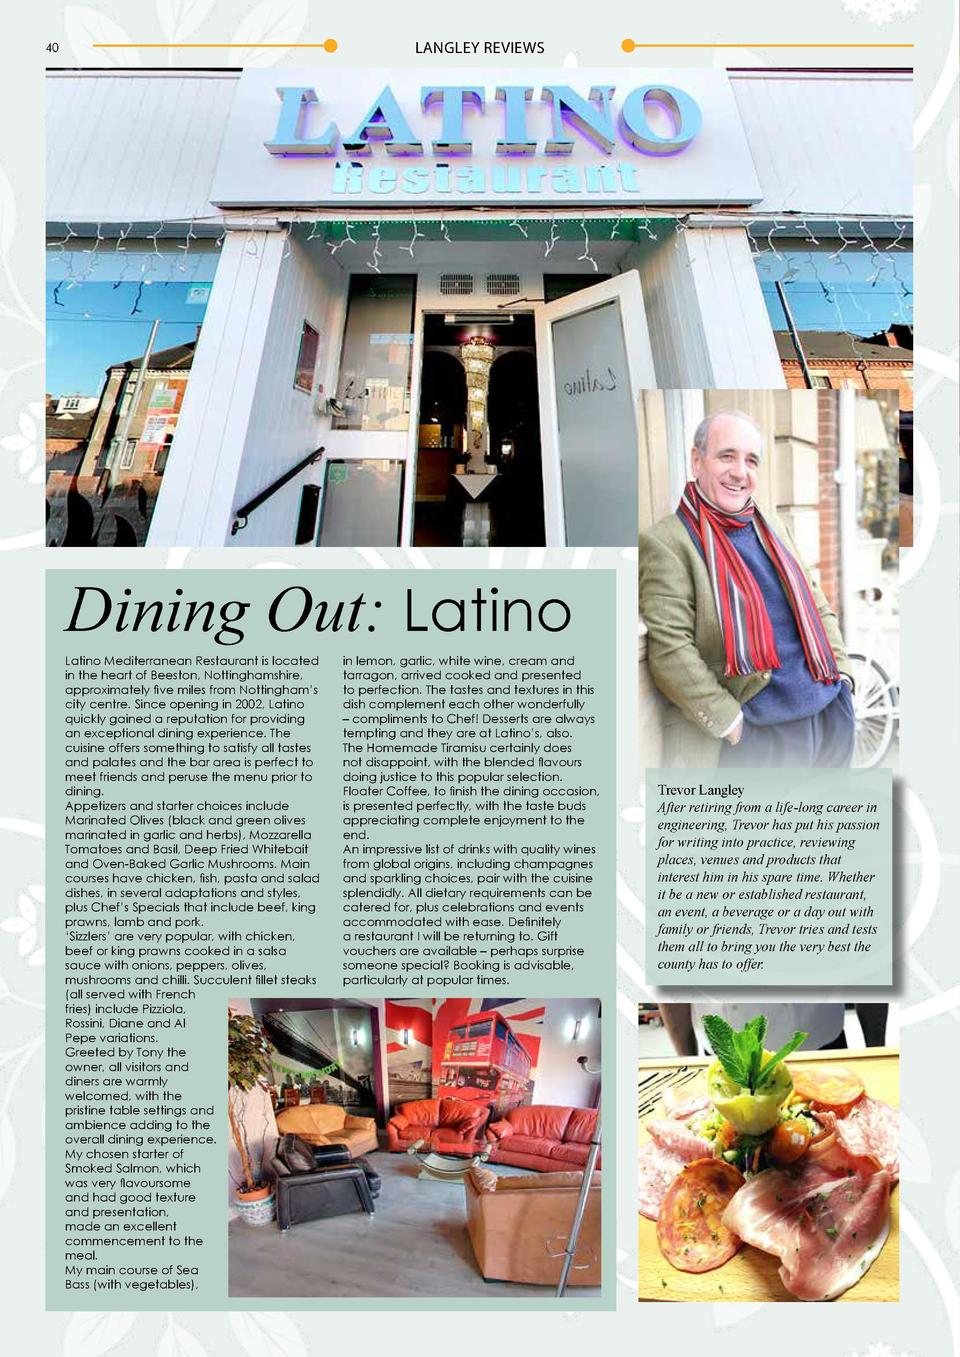 LANGLEY REVIEWS  40  Dining Out  Latino Latino Mediterranean Restaurant is located in the heart of Beeston, Nottinghamshir...